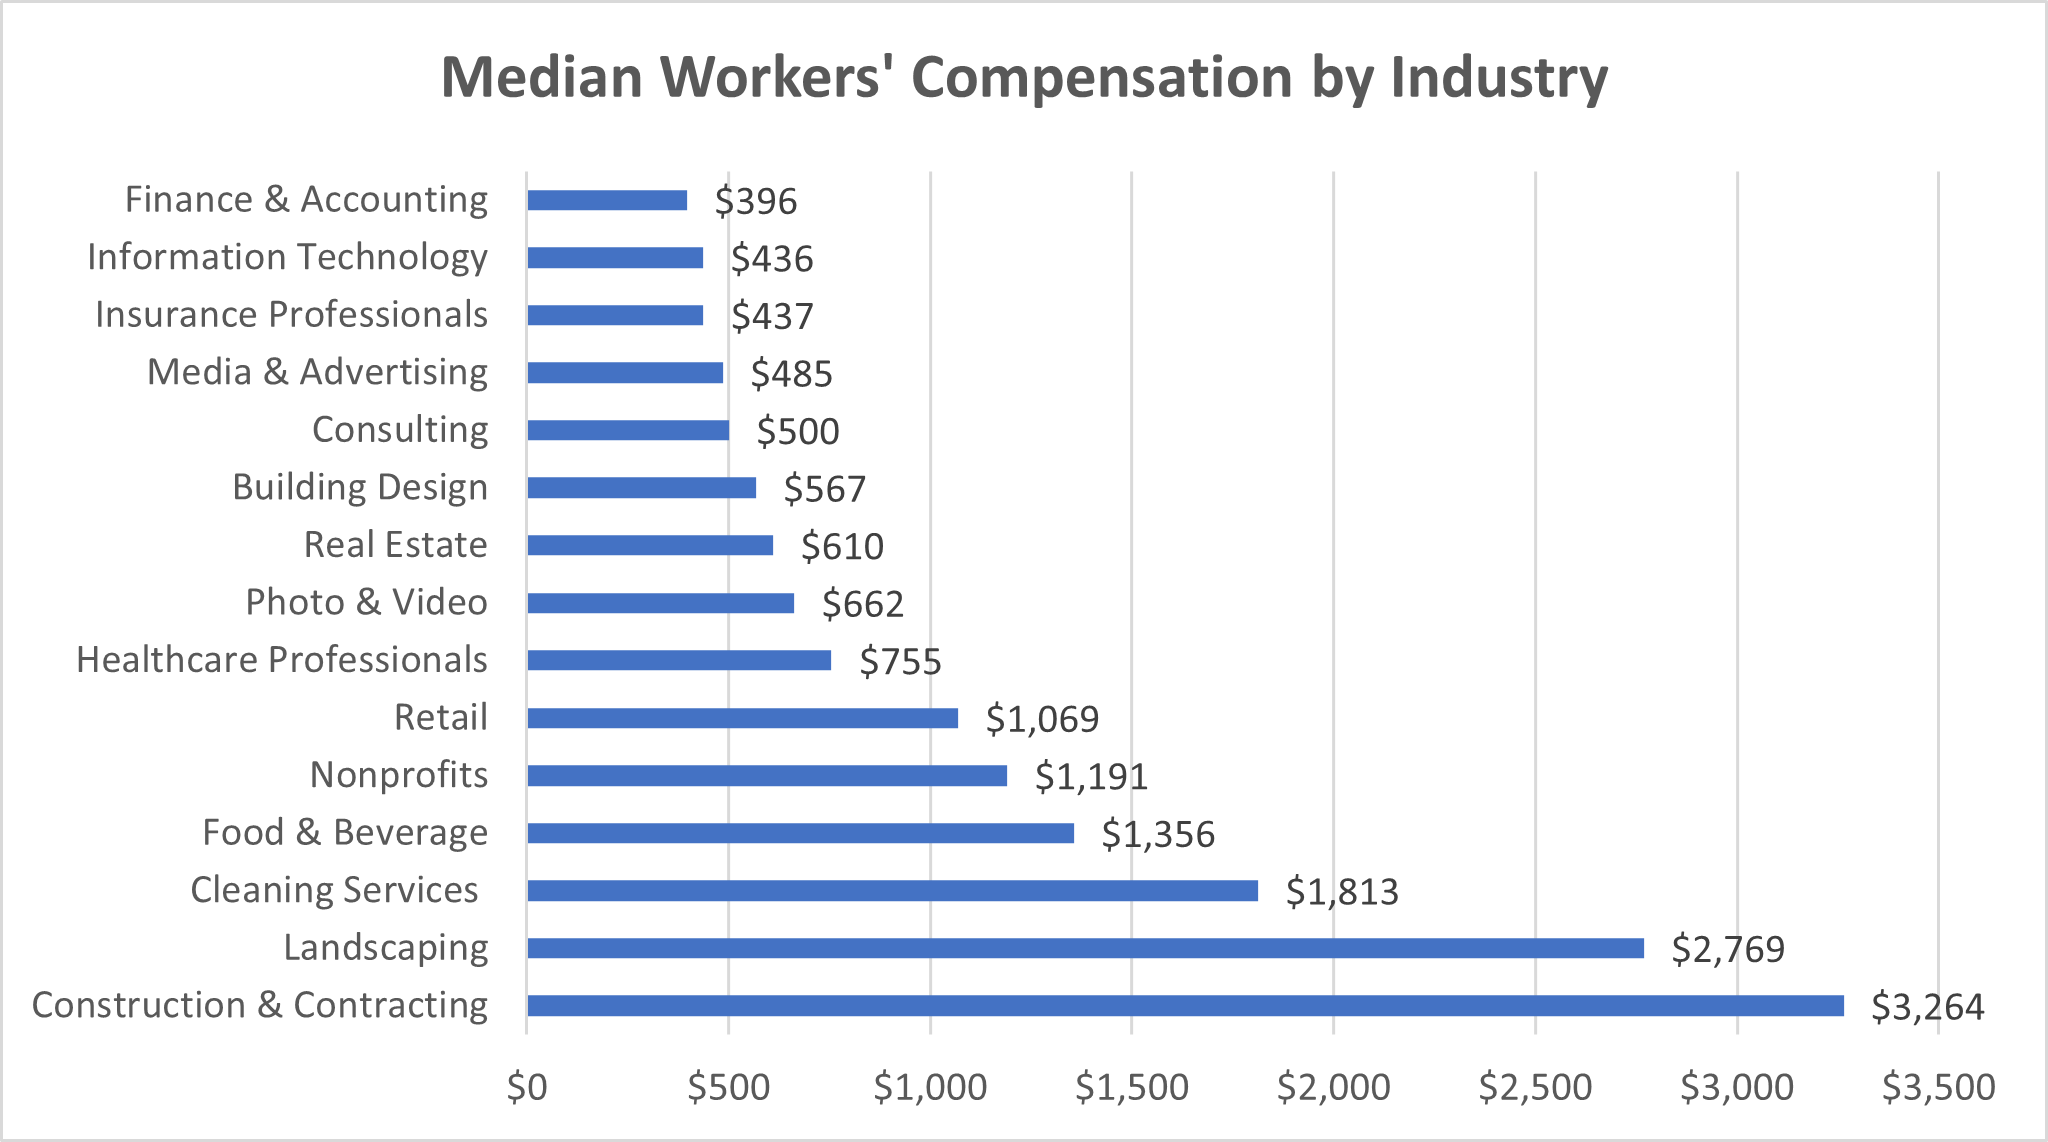 unger workers comp by industry